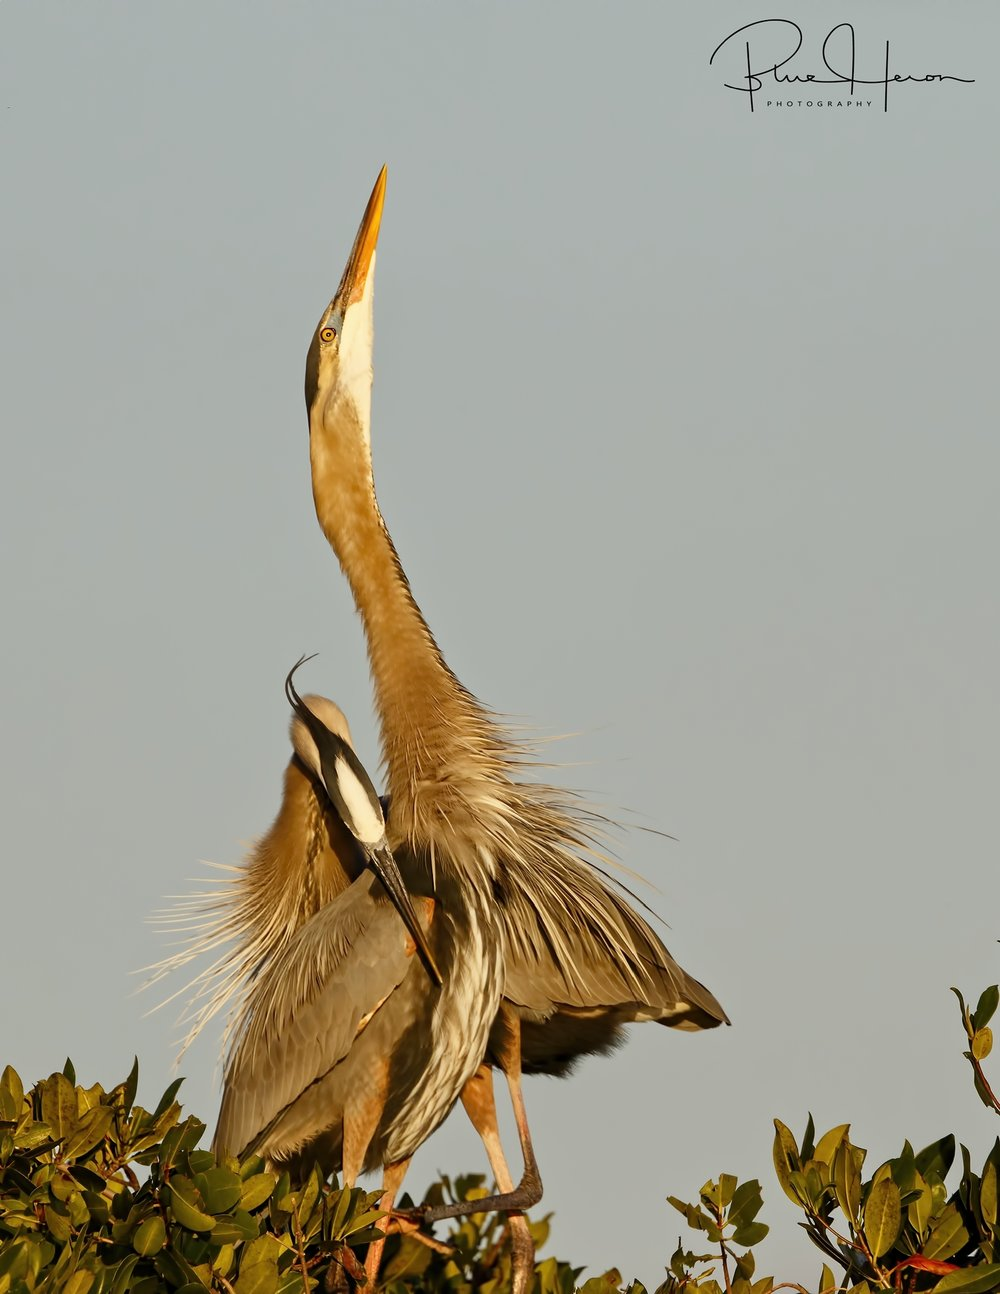 Missed you Blue...Great Blue Herons showing affection with a hug and display